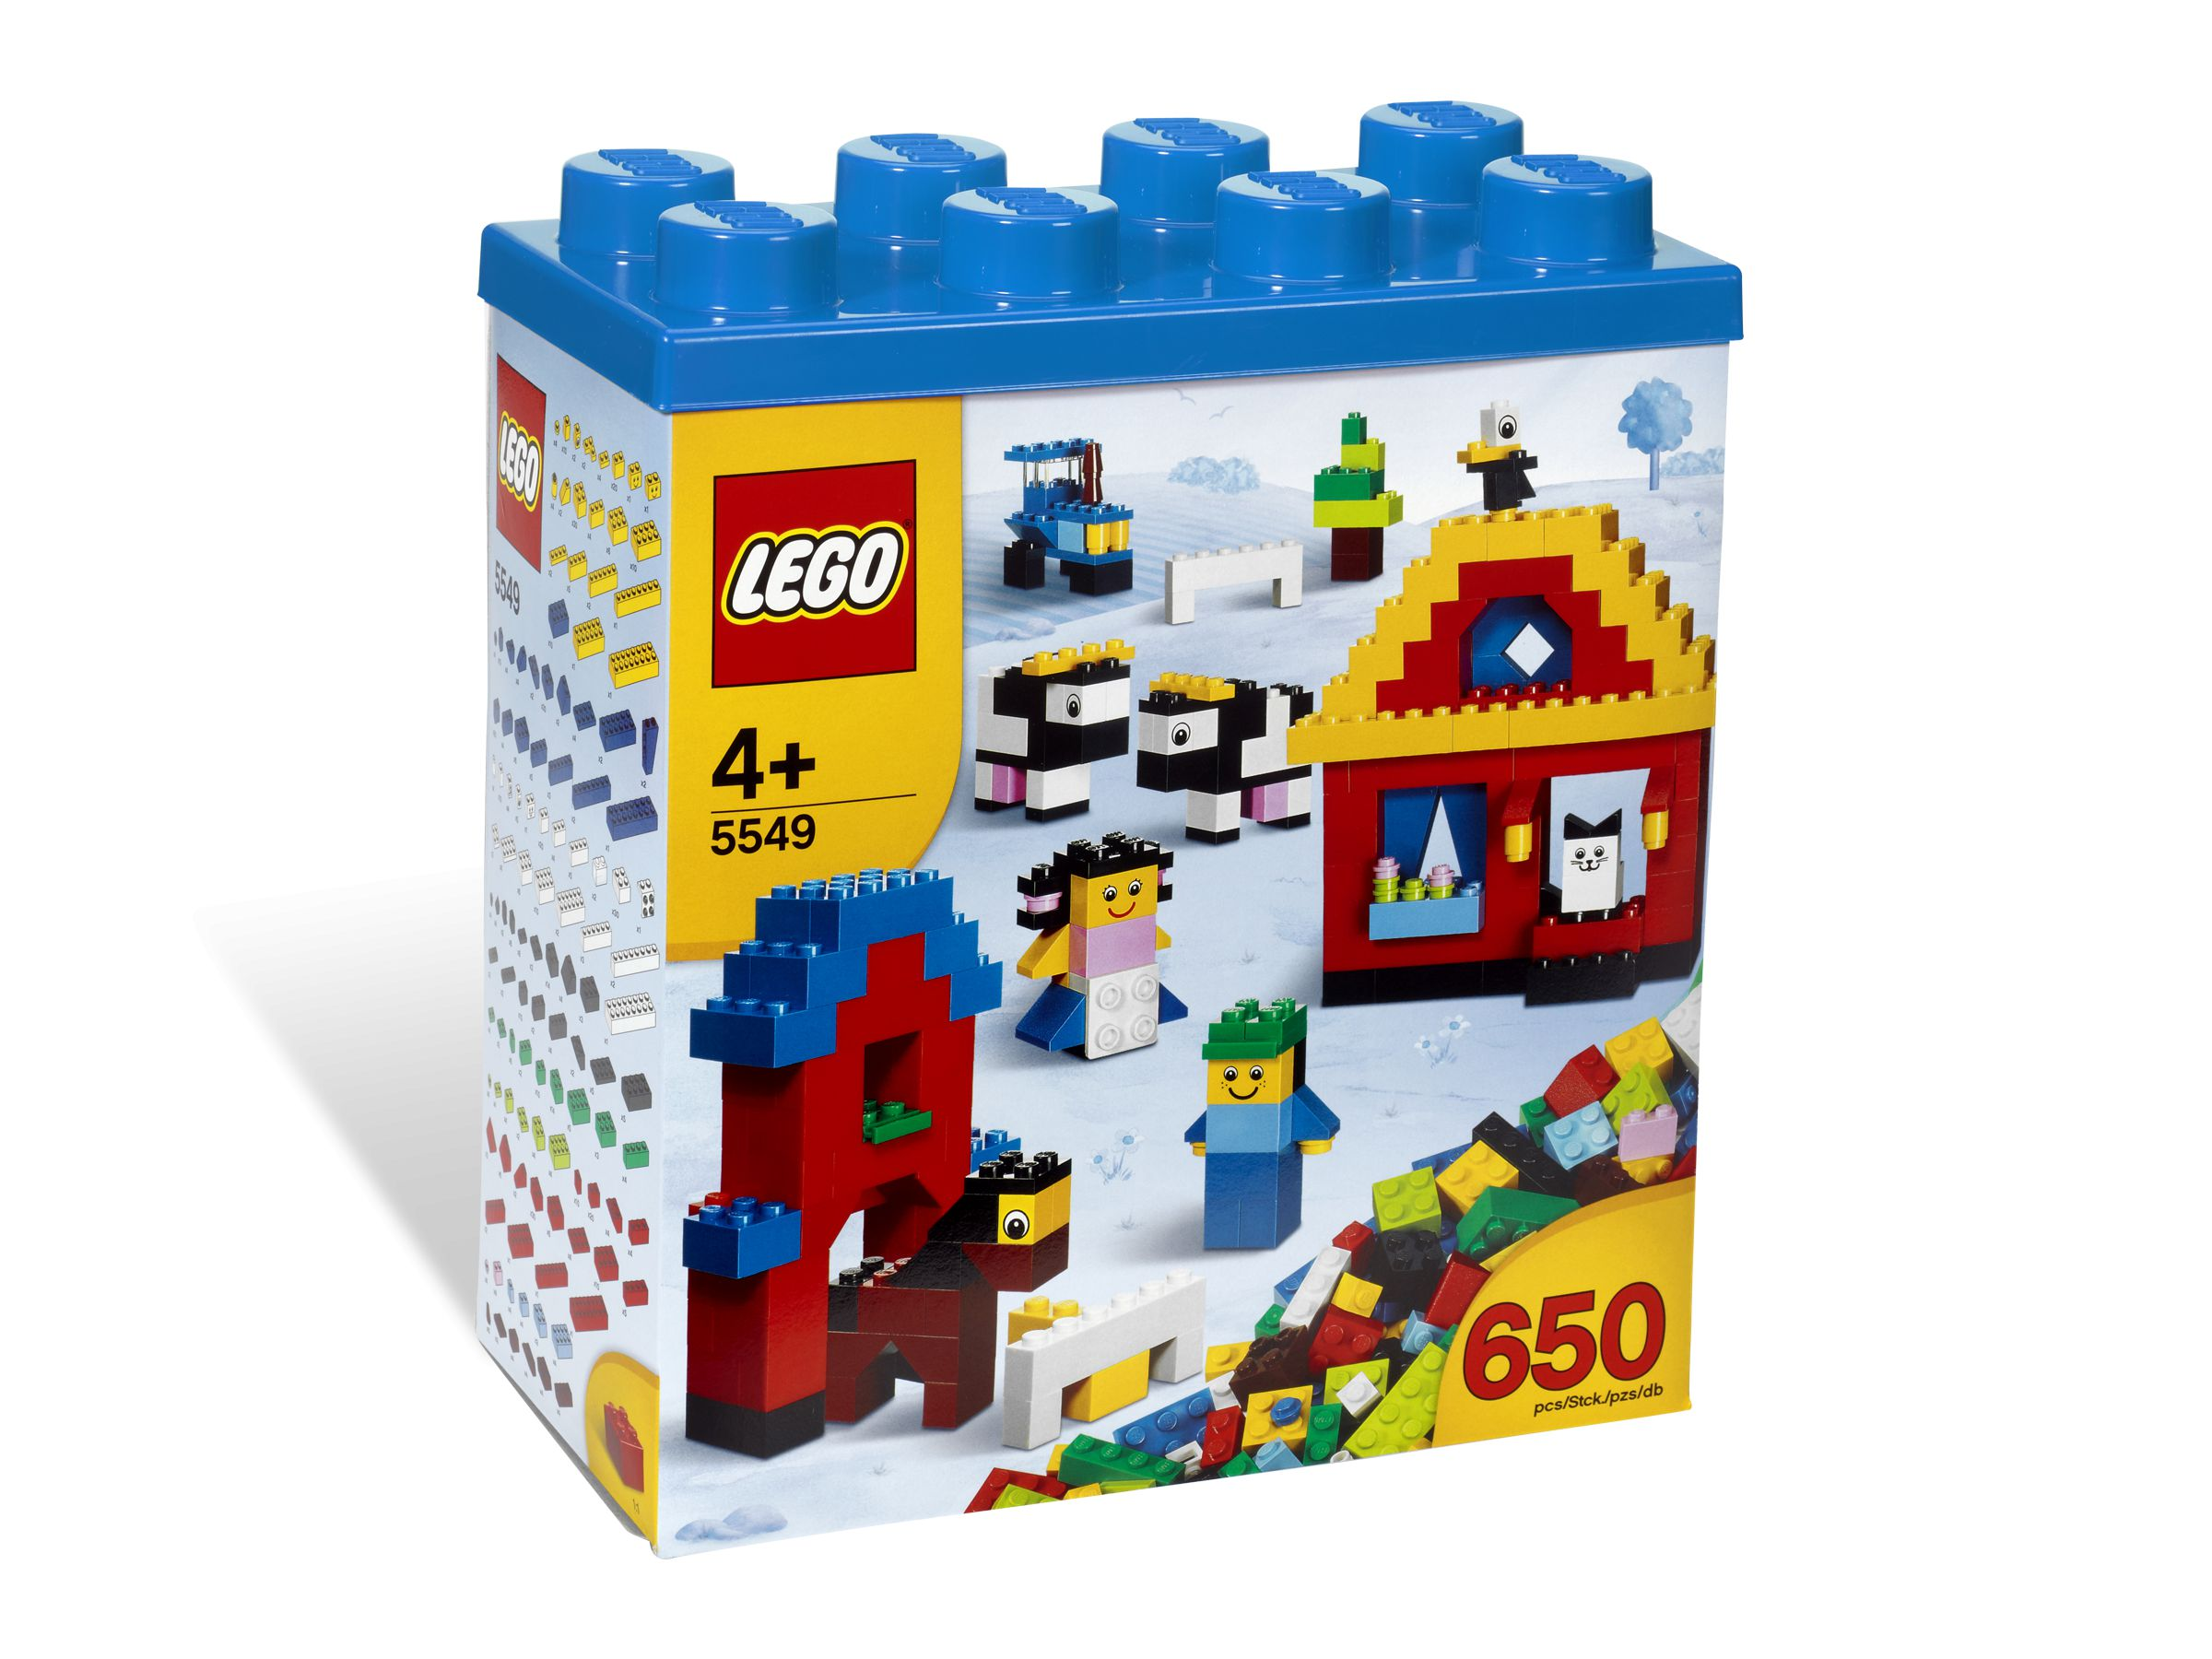 LEGO Bricks and More 5549 Bausteine Box